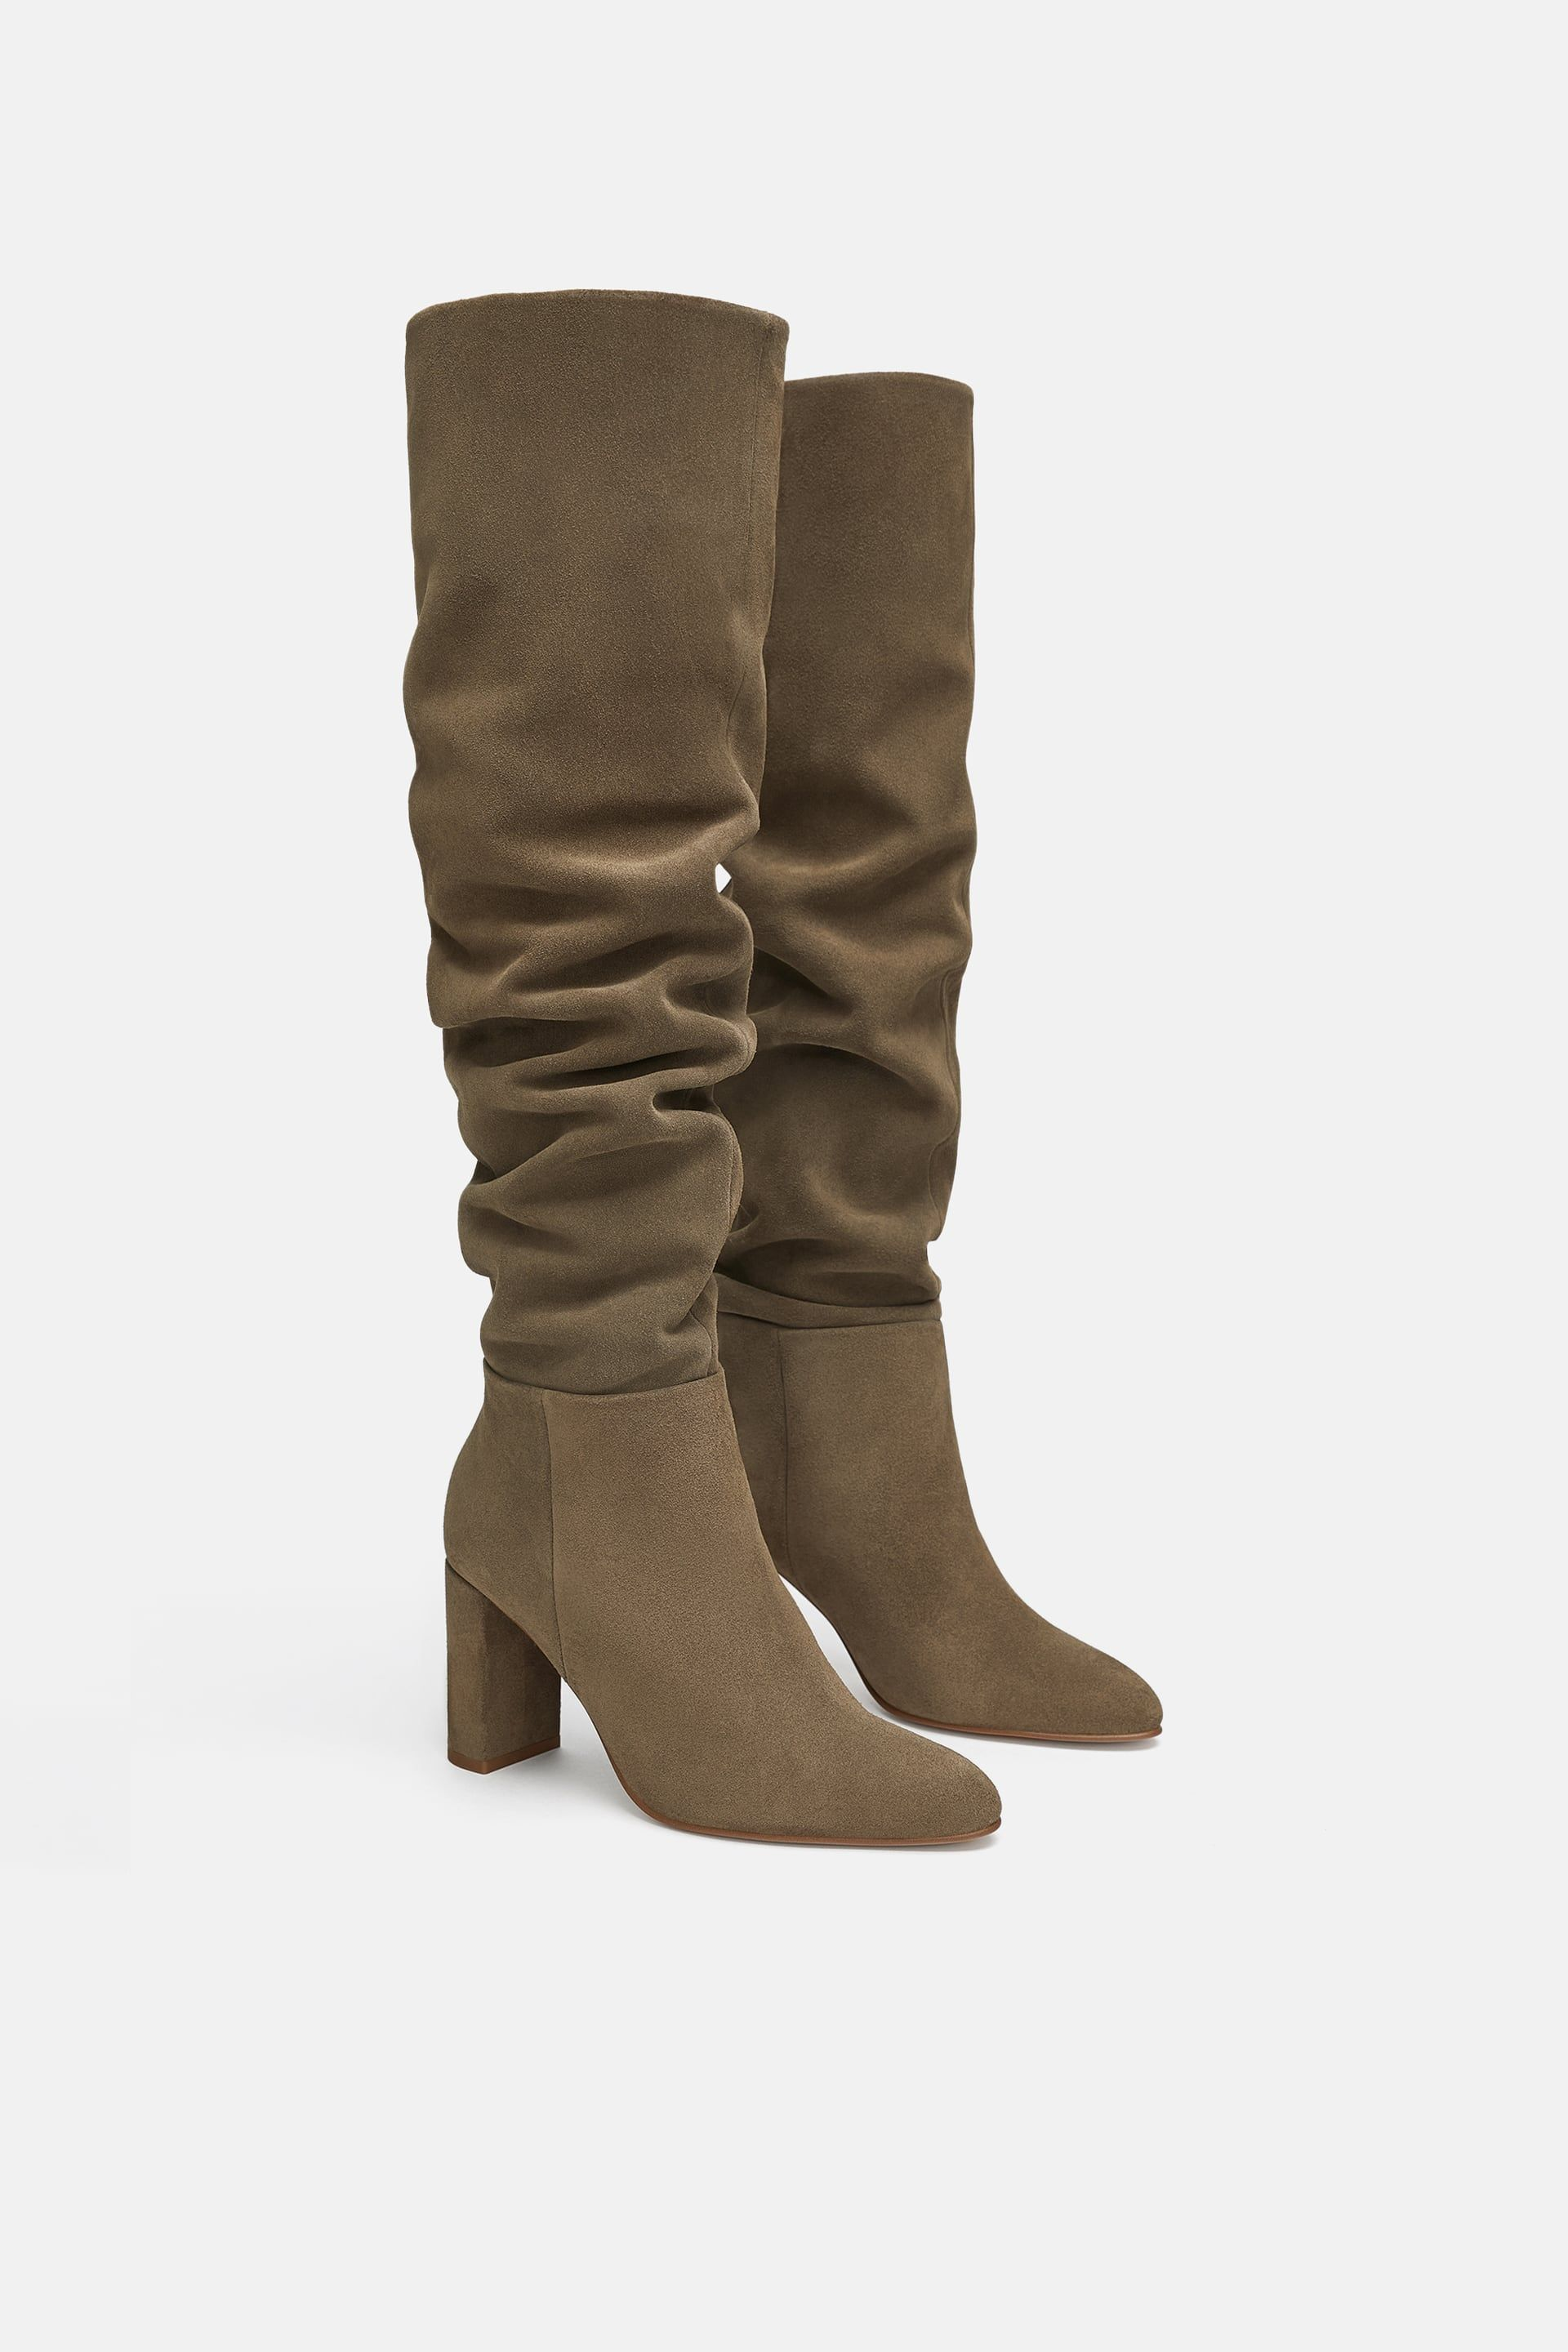 Image 1 of HIGH-HEEL LEATHER BOOTS from Zara   AW 18 Wishlist ... 04e5e874c9